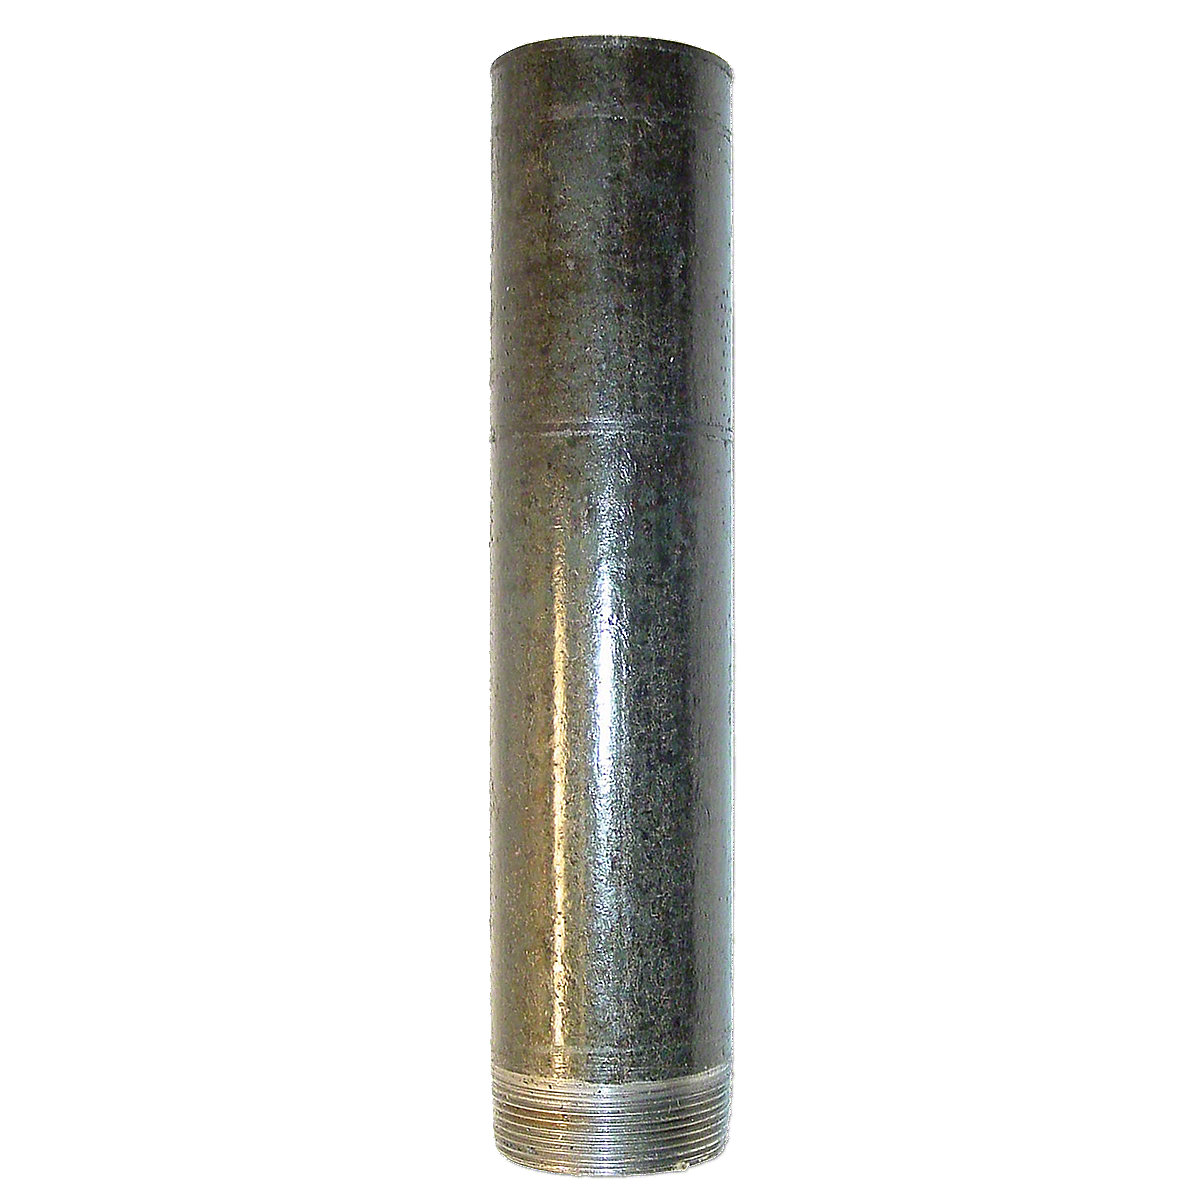 Exhaust Pipe For Massey Harris: 33, 44, 55, 333, 44 Special, 444, 555. and Massey Ferguson: Industrial: 303, 404, 406, 1001.